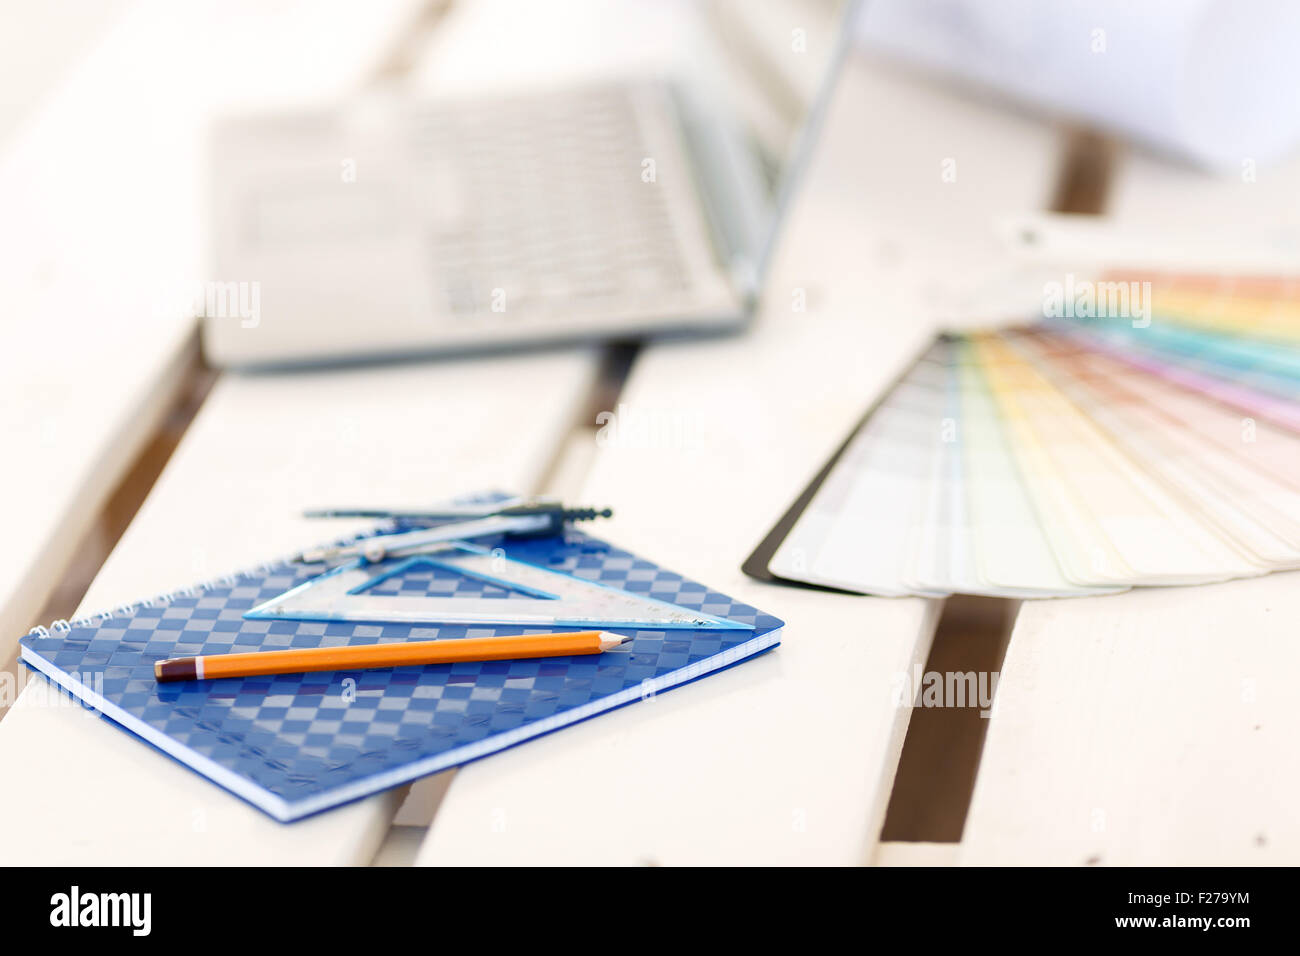 Stationary lying on the table. - Stock Image